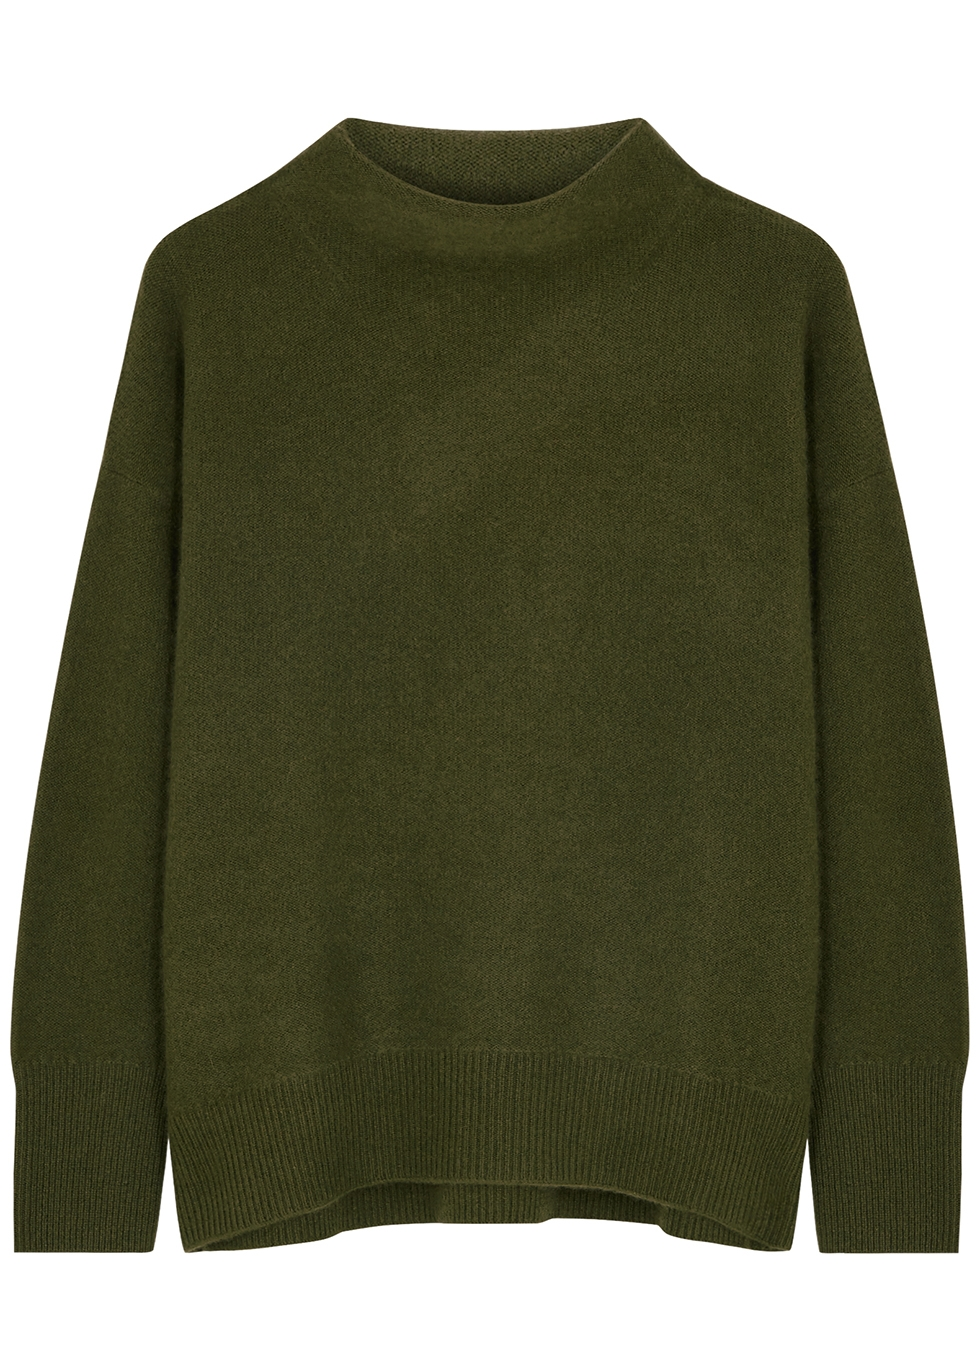 Army green cashmere jumper